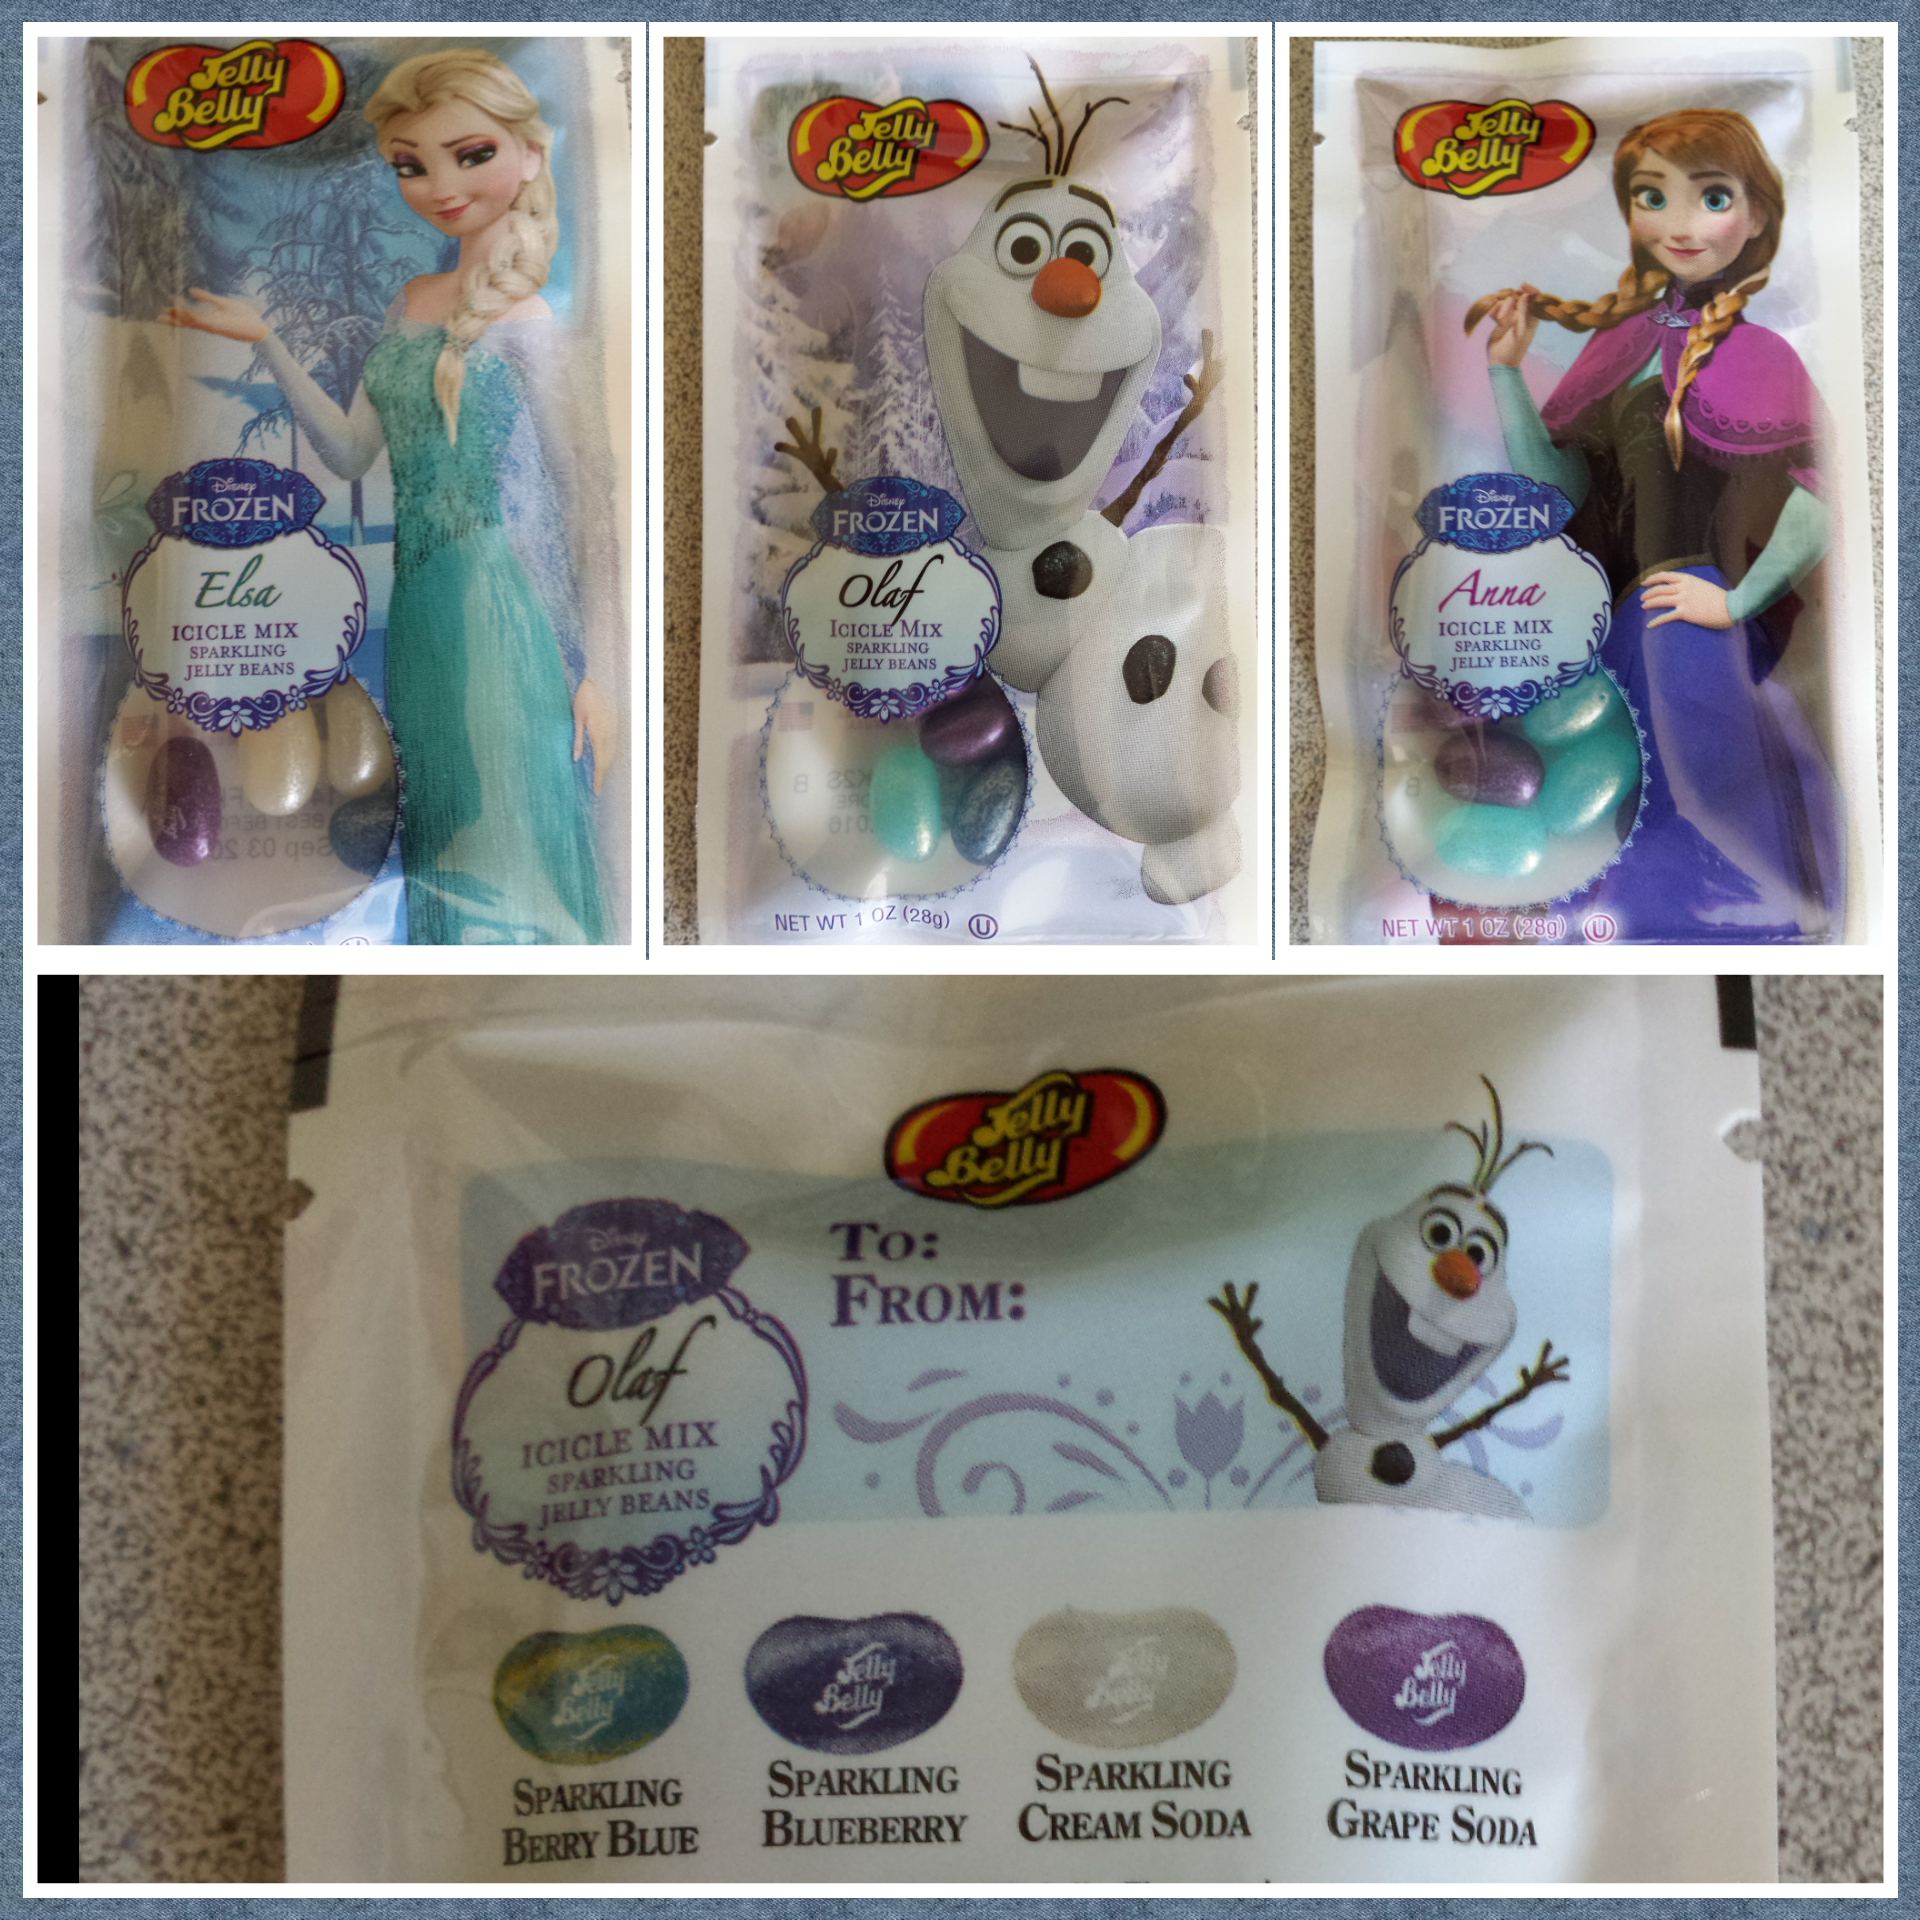 For those looking for more #Frozen items…  Anna, Elsa & Olaf Jelly Belly packages